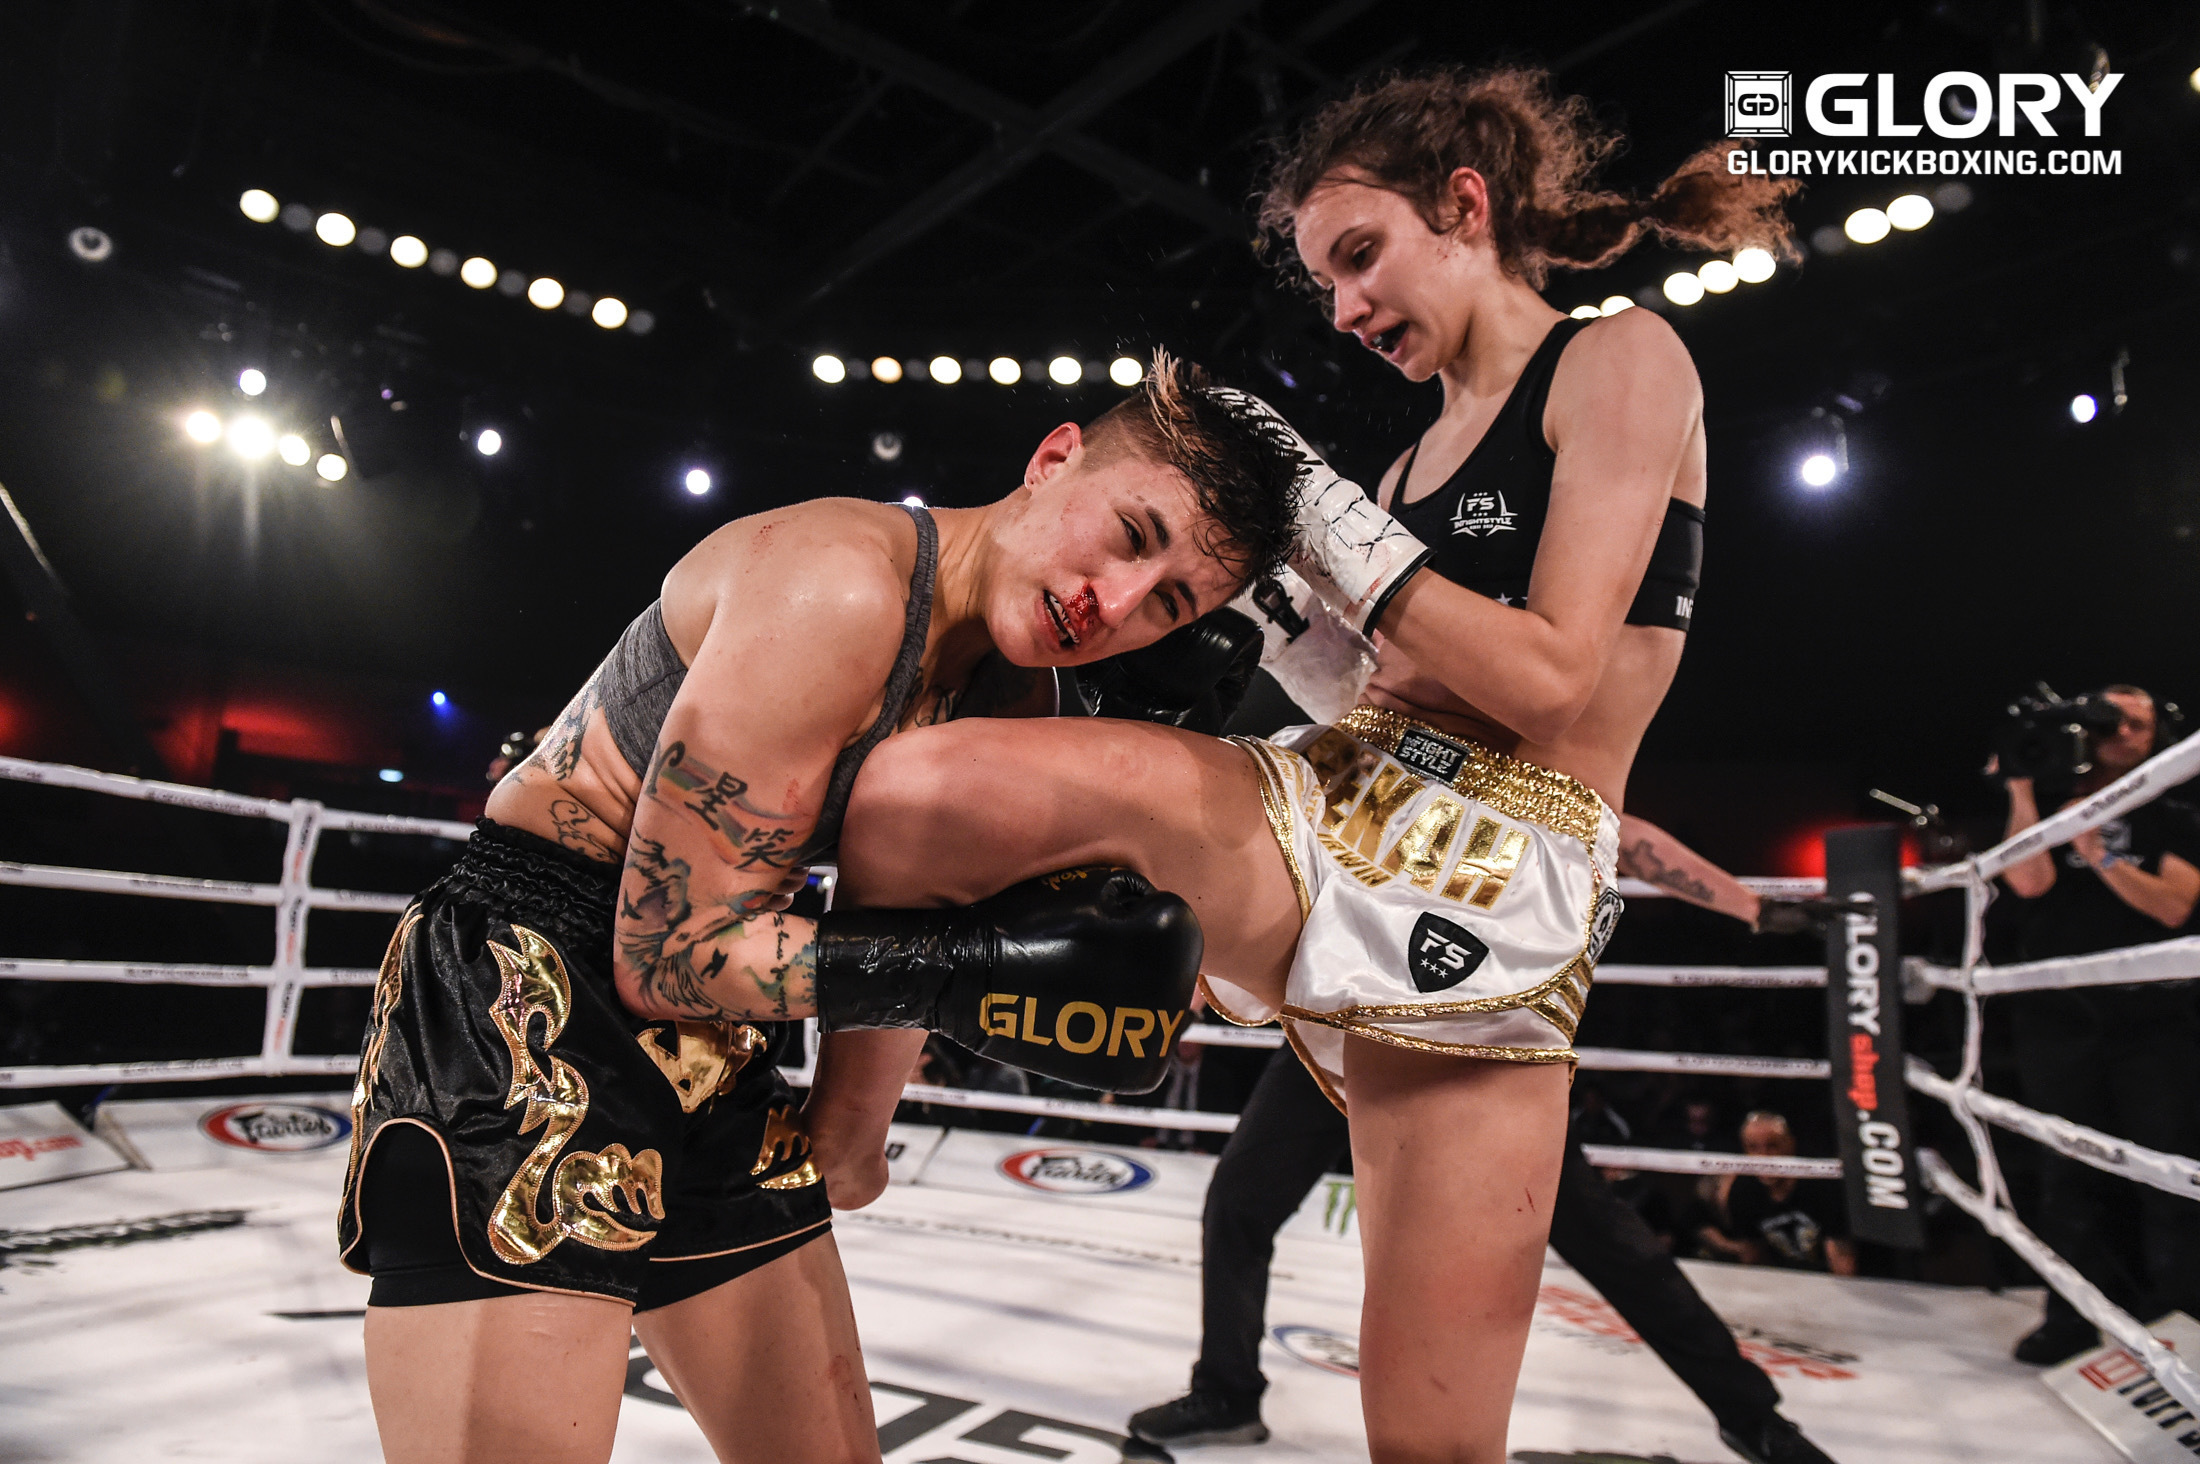 Irwin shines in GLORY debut win over scrappy Skinner